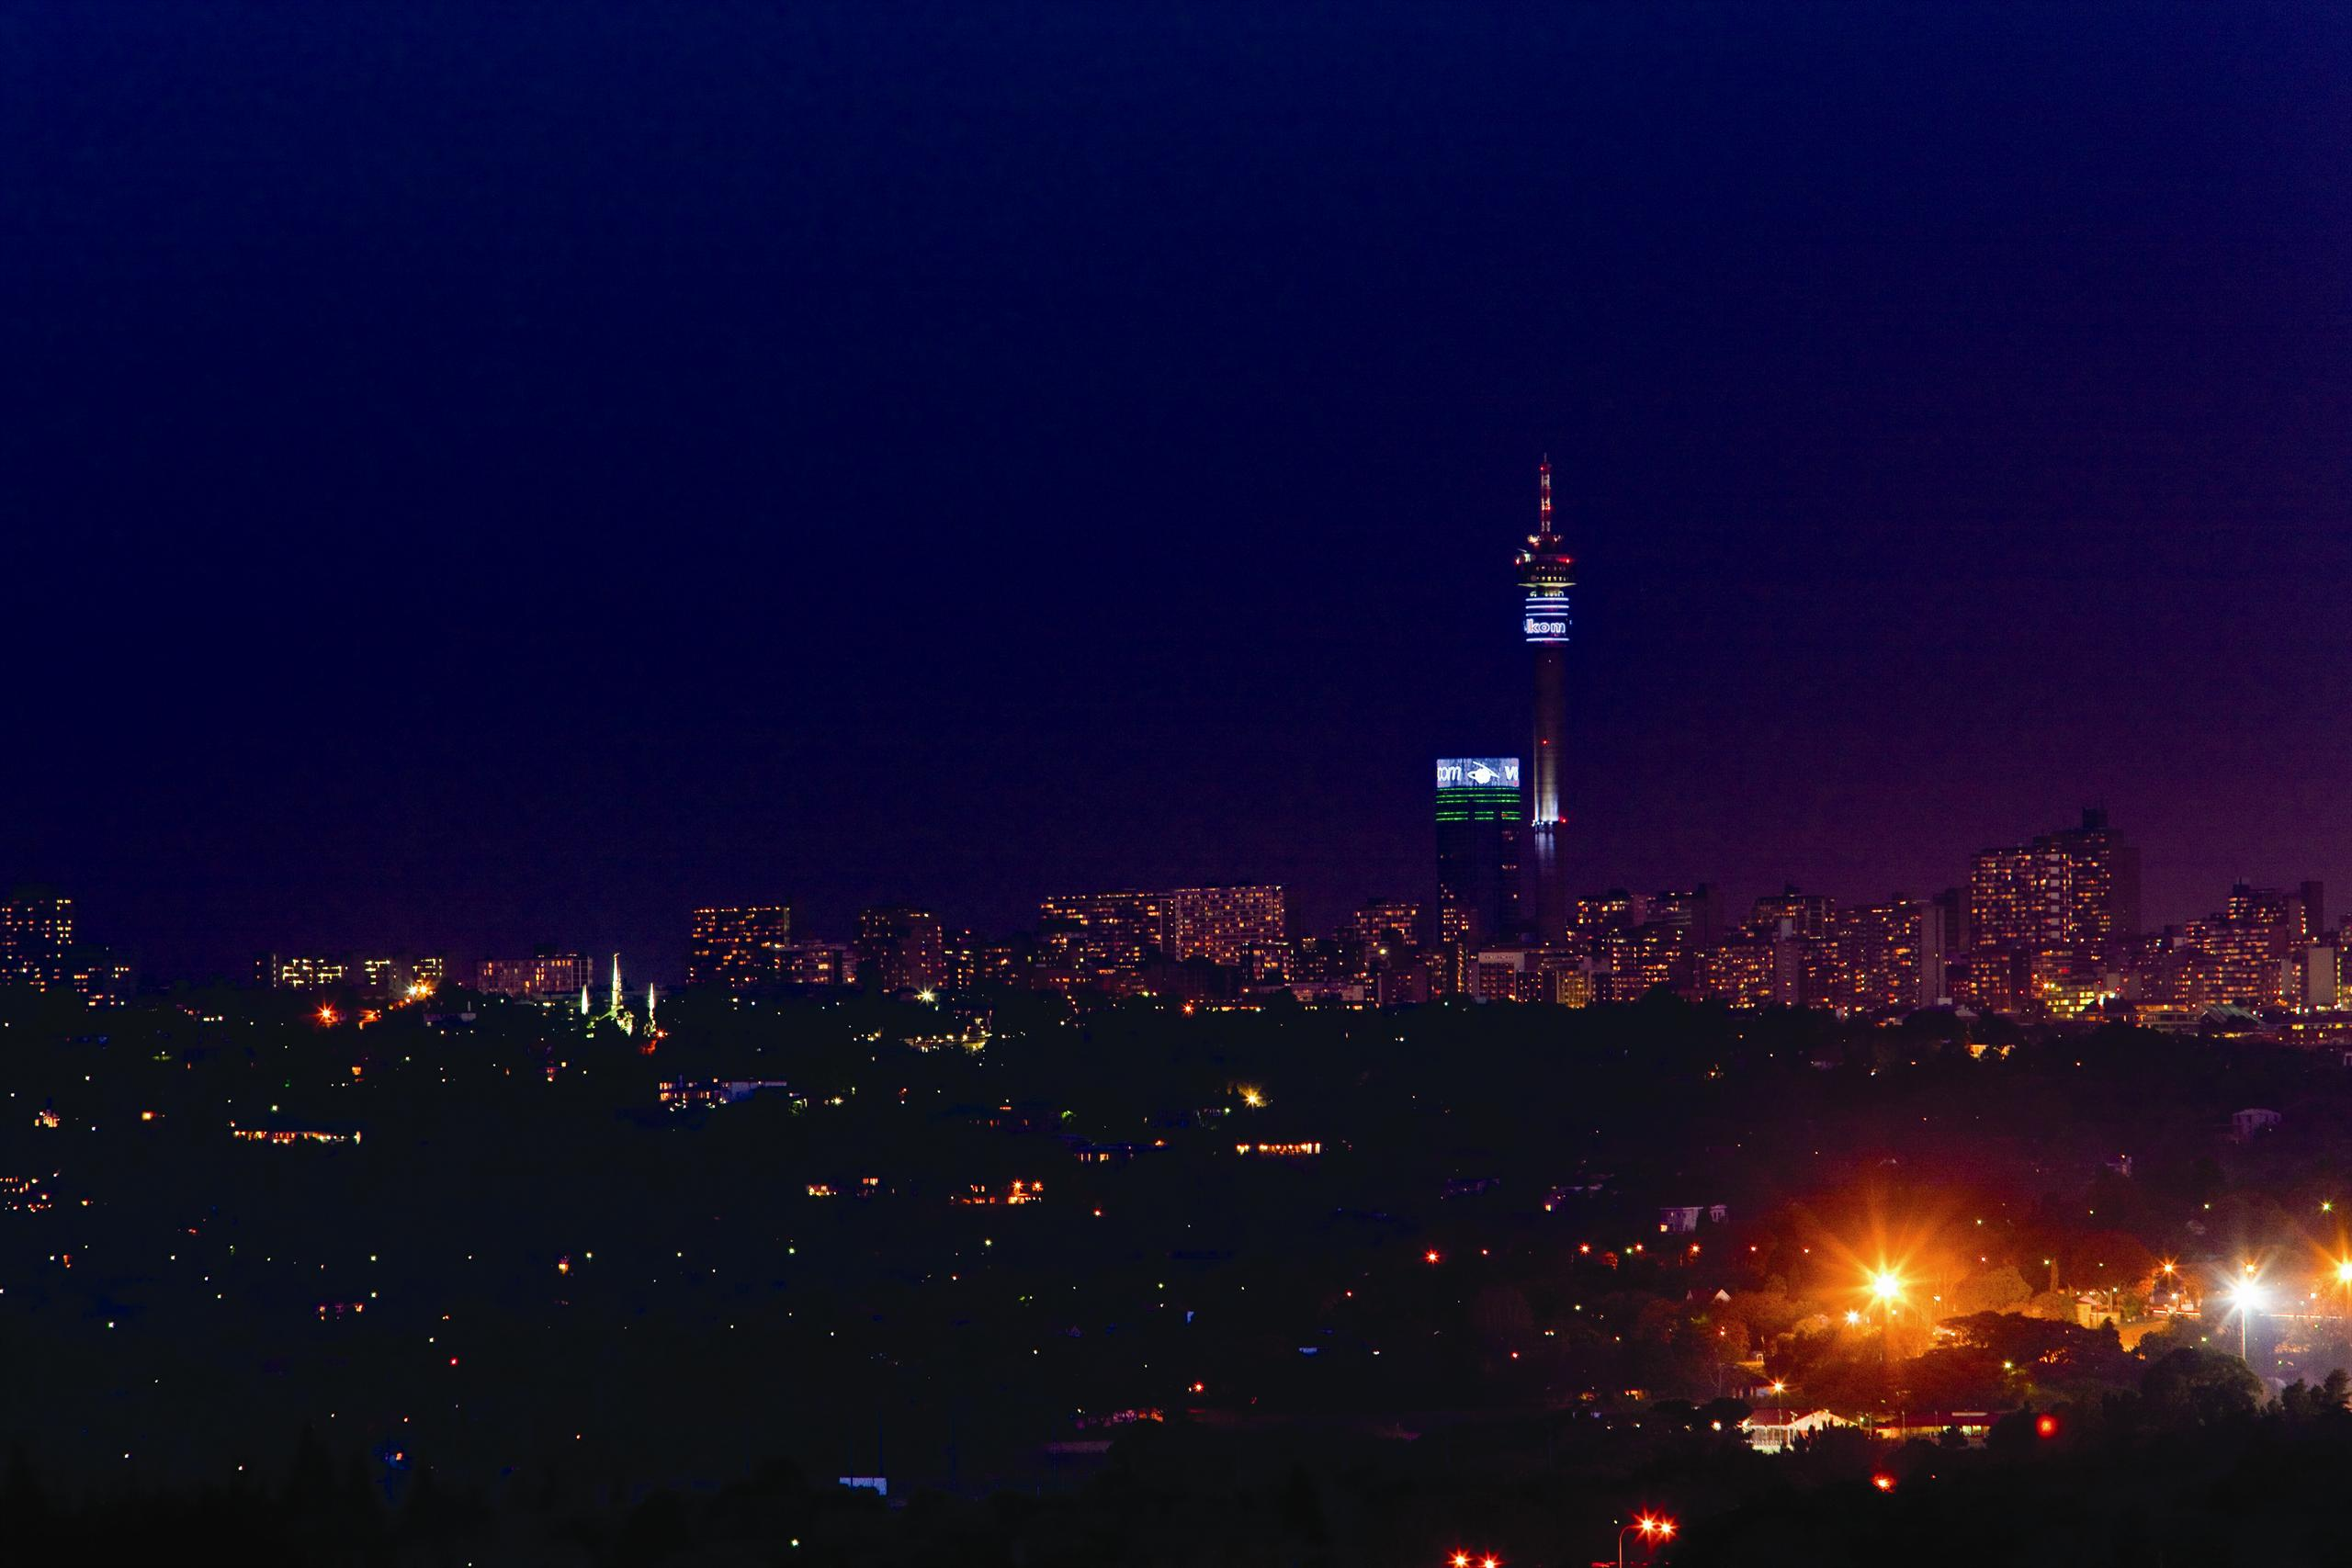 Johannesburg broadband tower